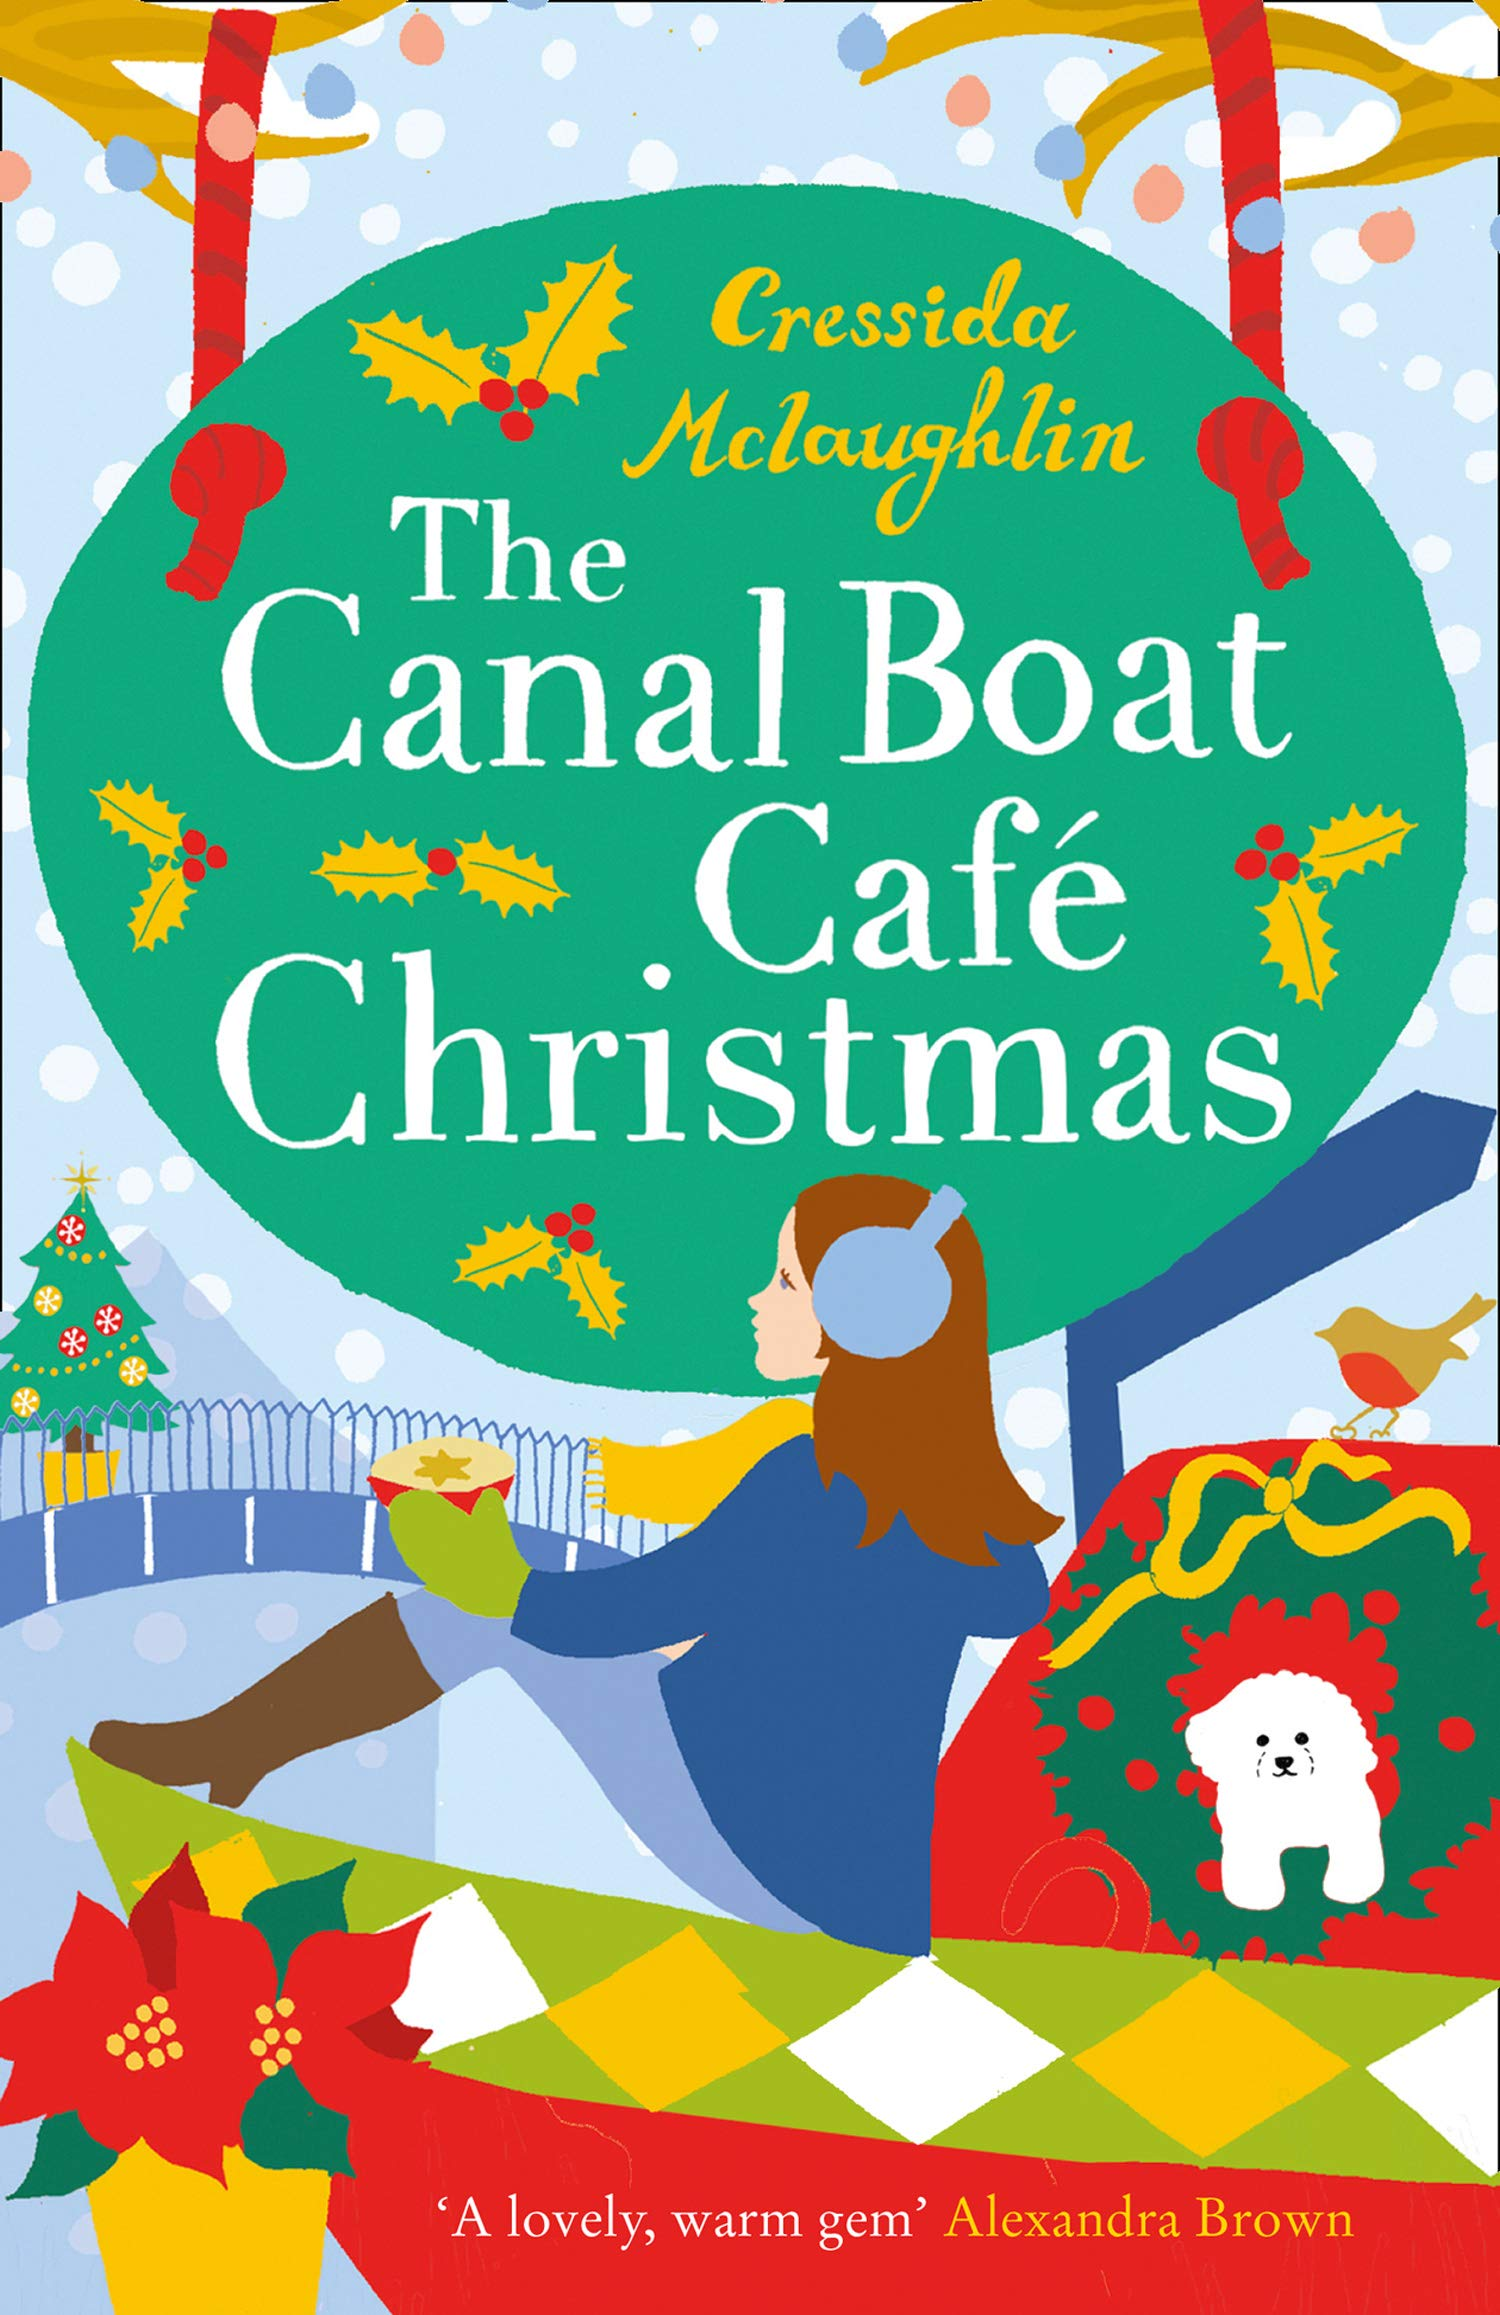 The Canal Boat Café Christmas: the most uplift and escapist book you will read this Christmas 2020